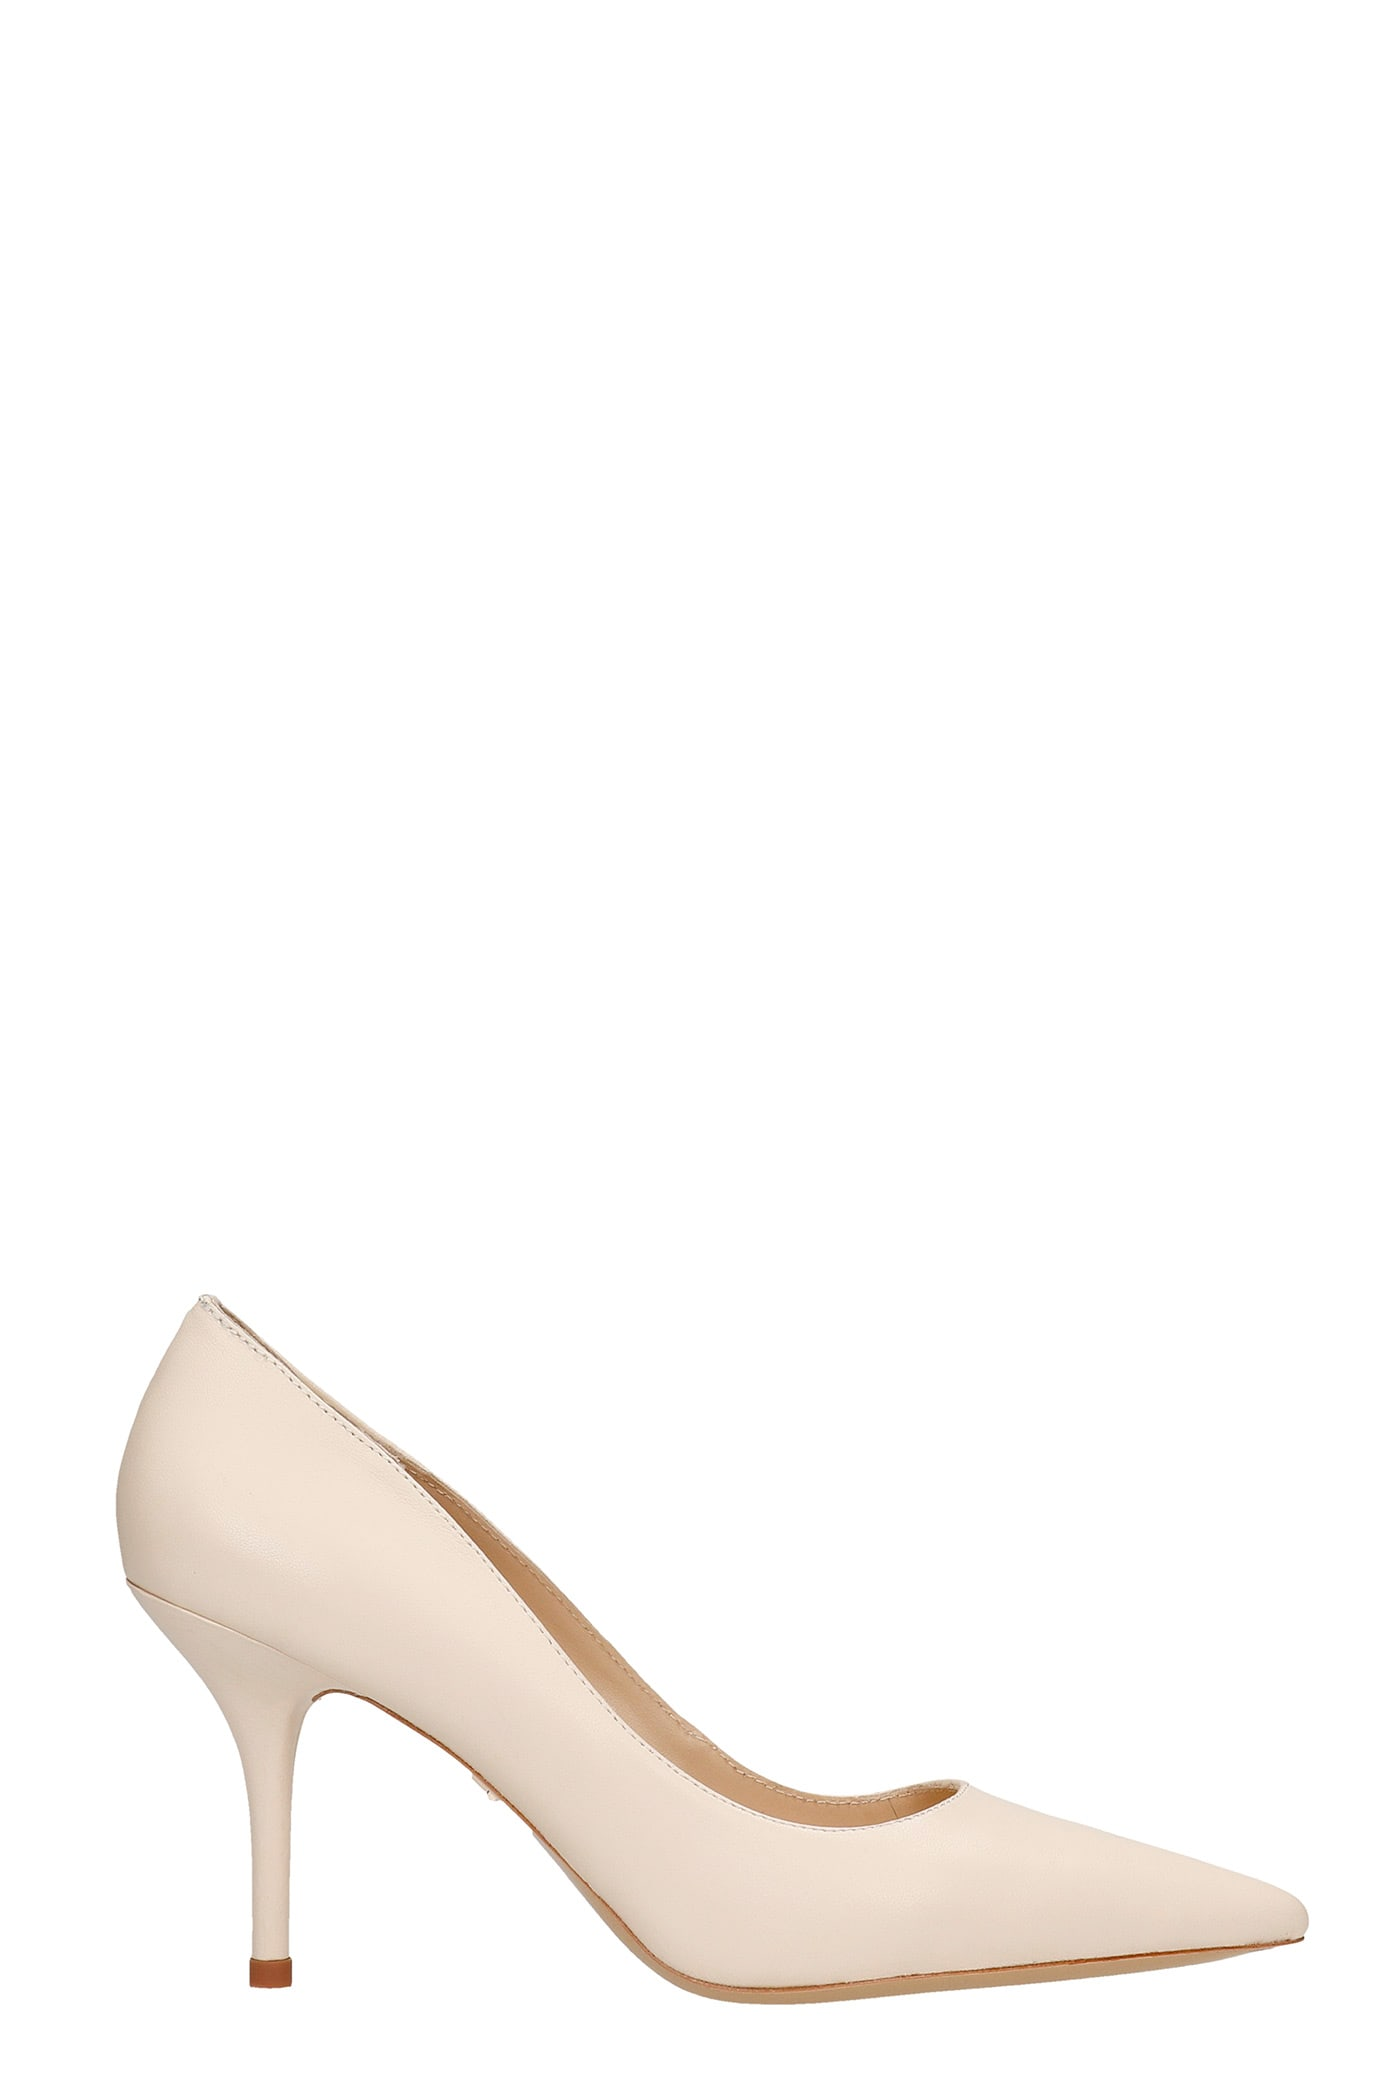 Pumps In Beige Leather